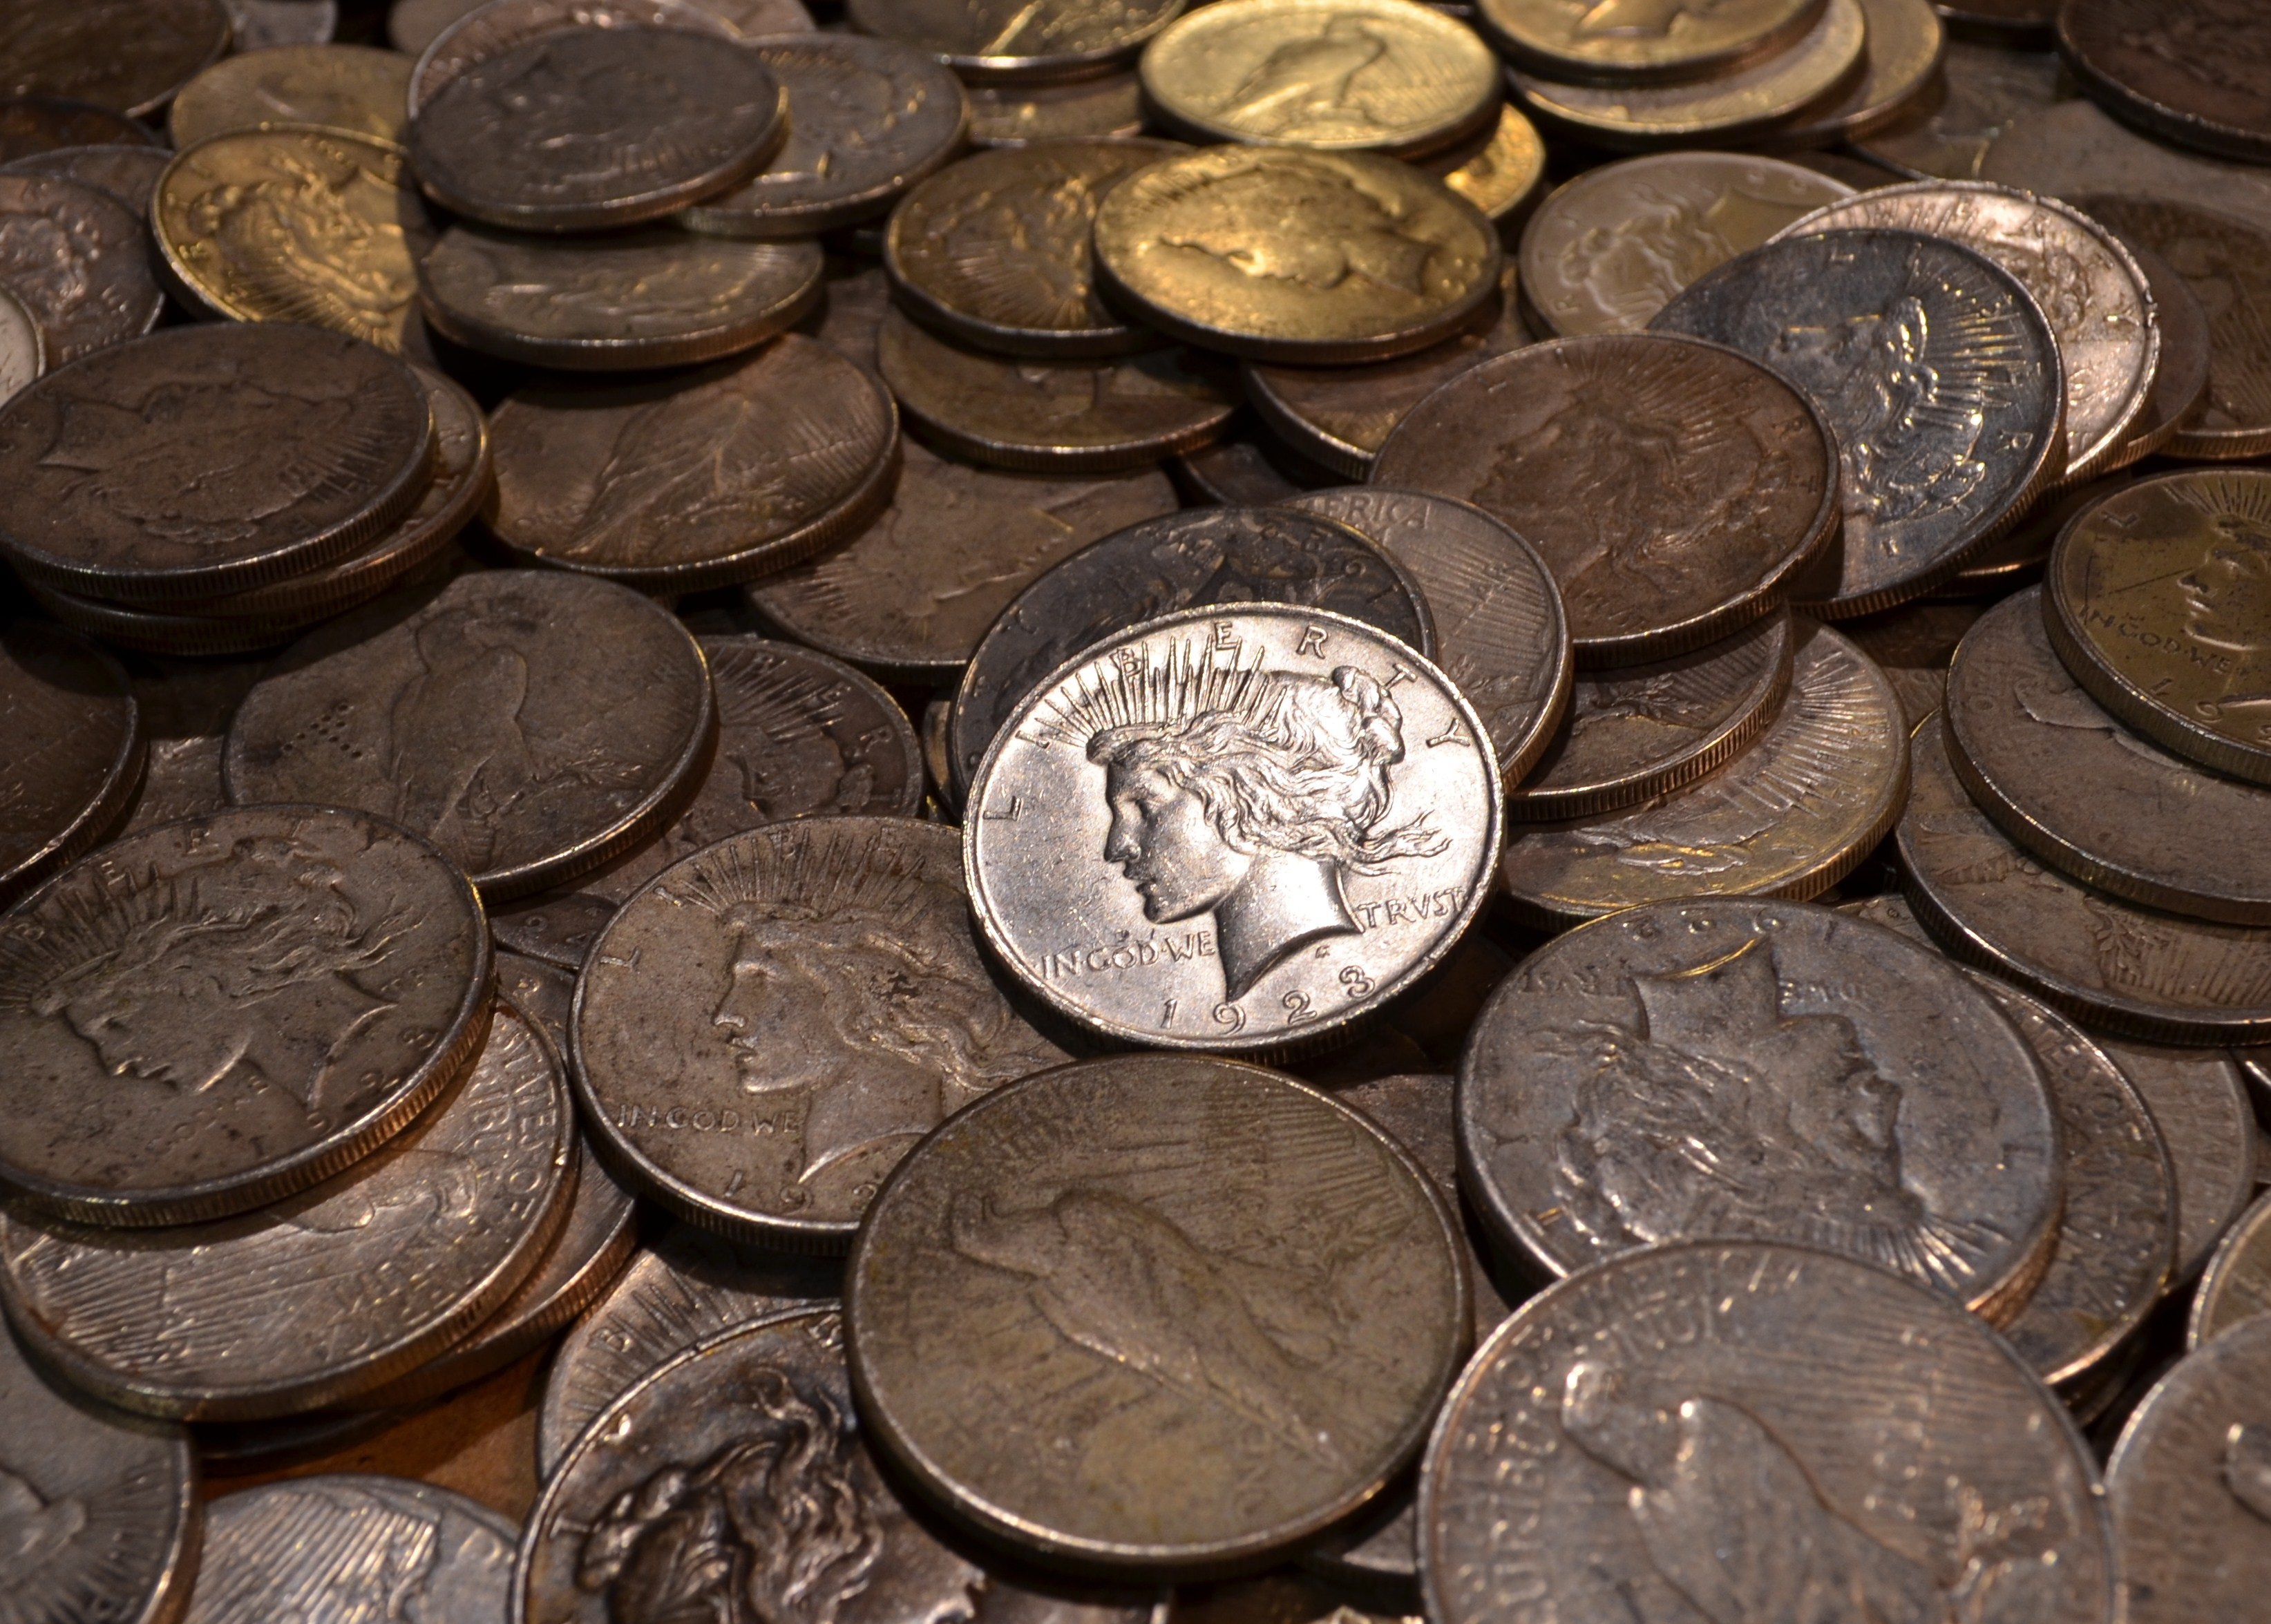 Buy And Sell Rare Coins And Currency In Rosemont With